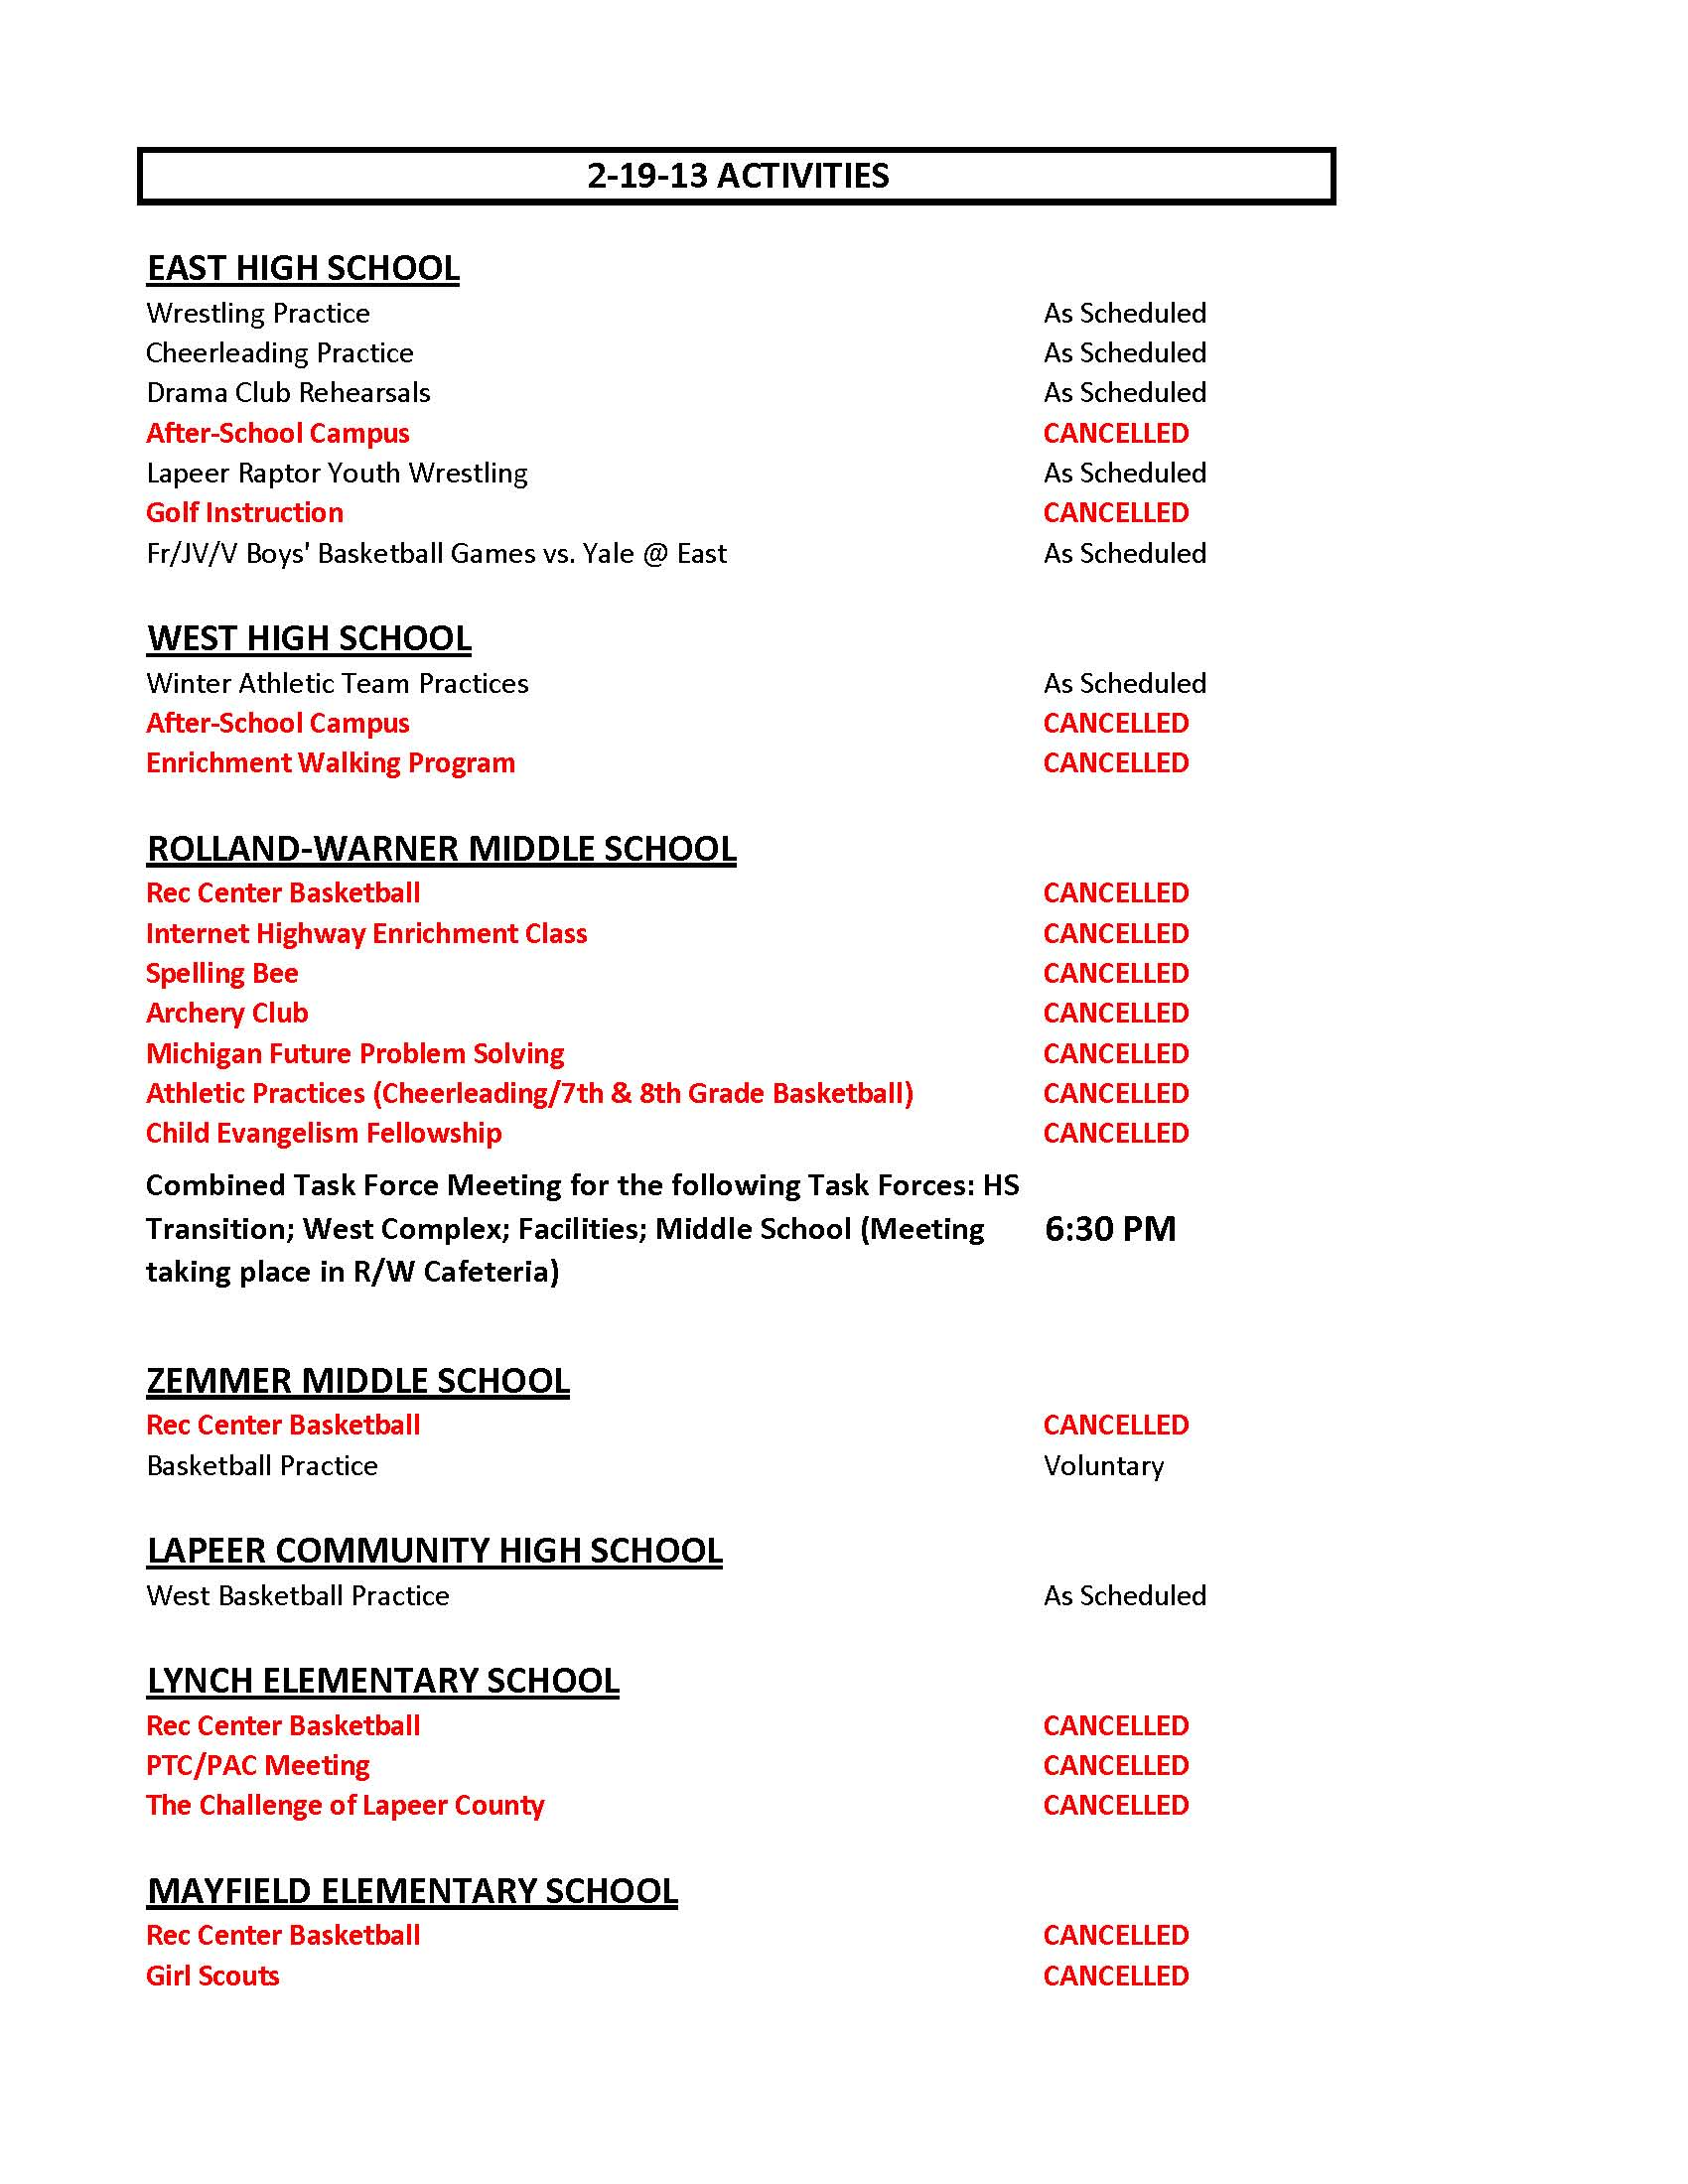 2-19-13 Activities_Page_1